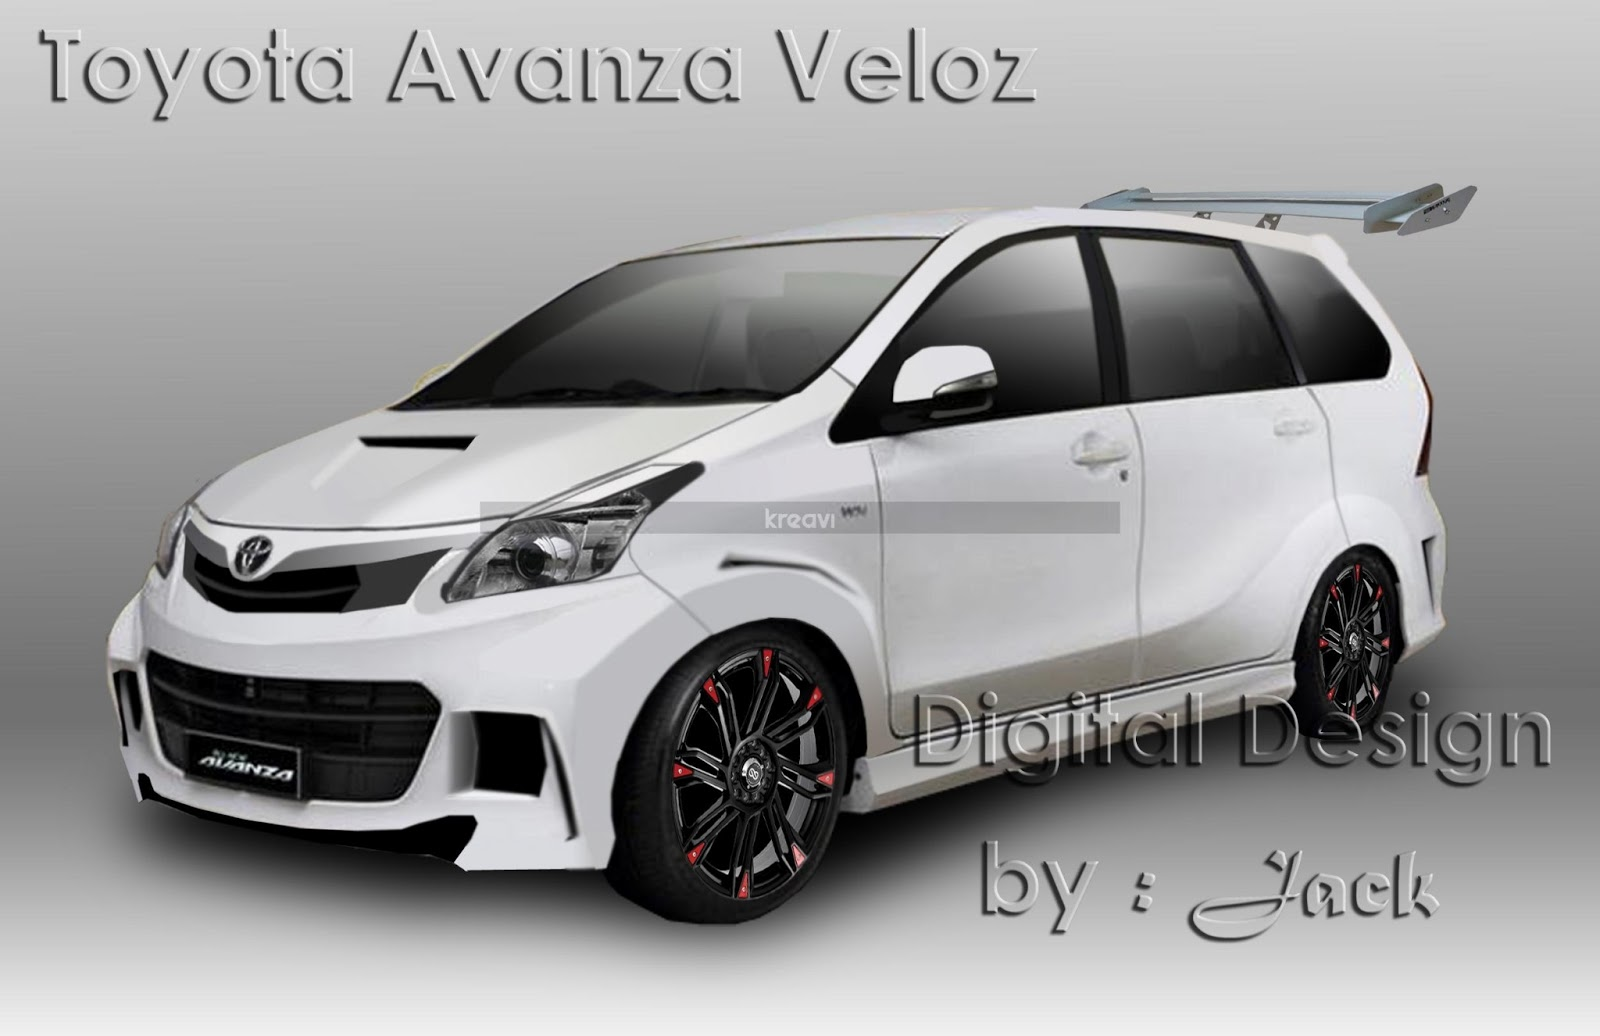 harga all new avanza veloz 2019 lampu indikator grand baru 2015 tattoo